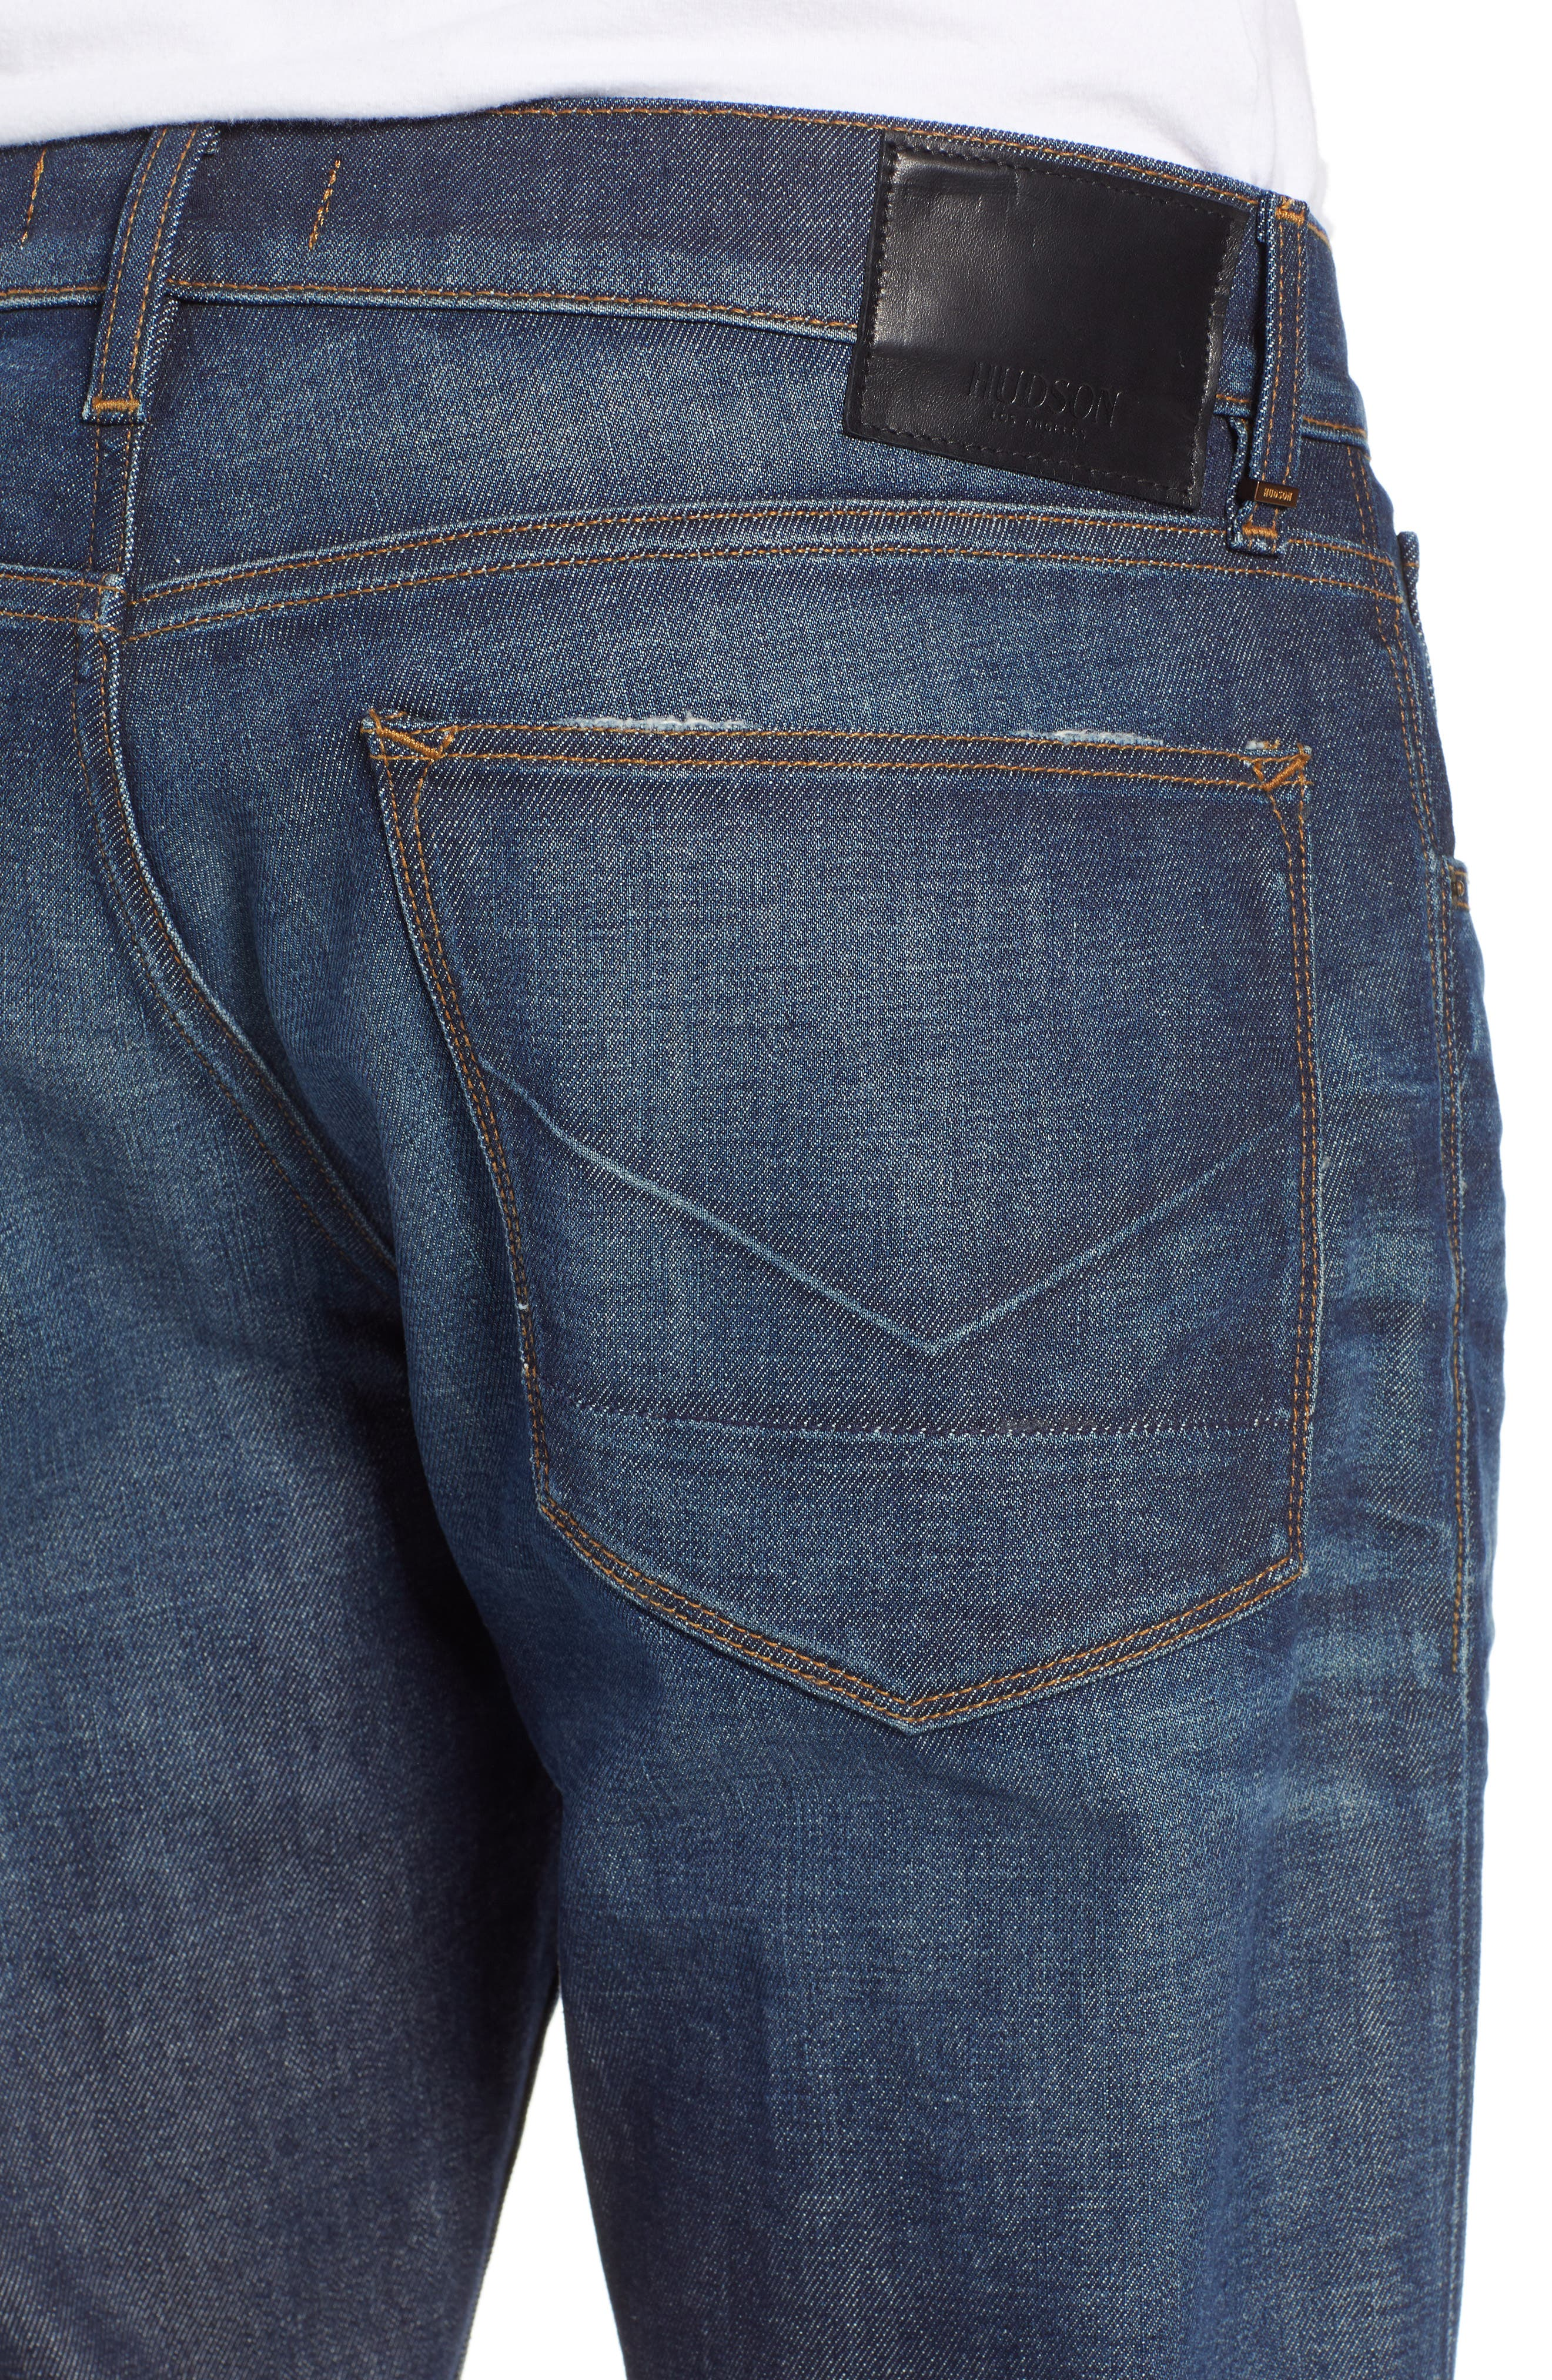 Byron Slim Straight Fit Jeans,                             Alternate thumbnail 4, color,                             ALBANY